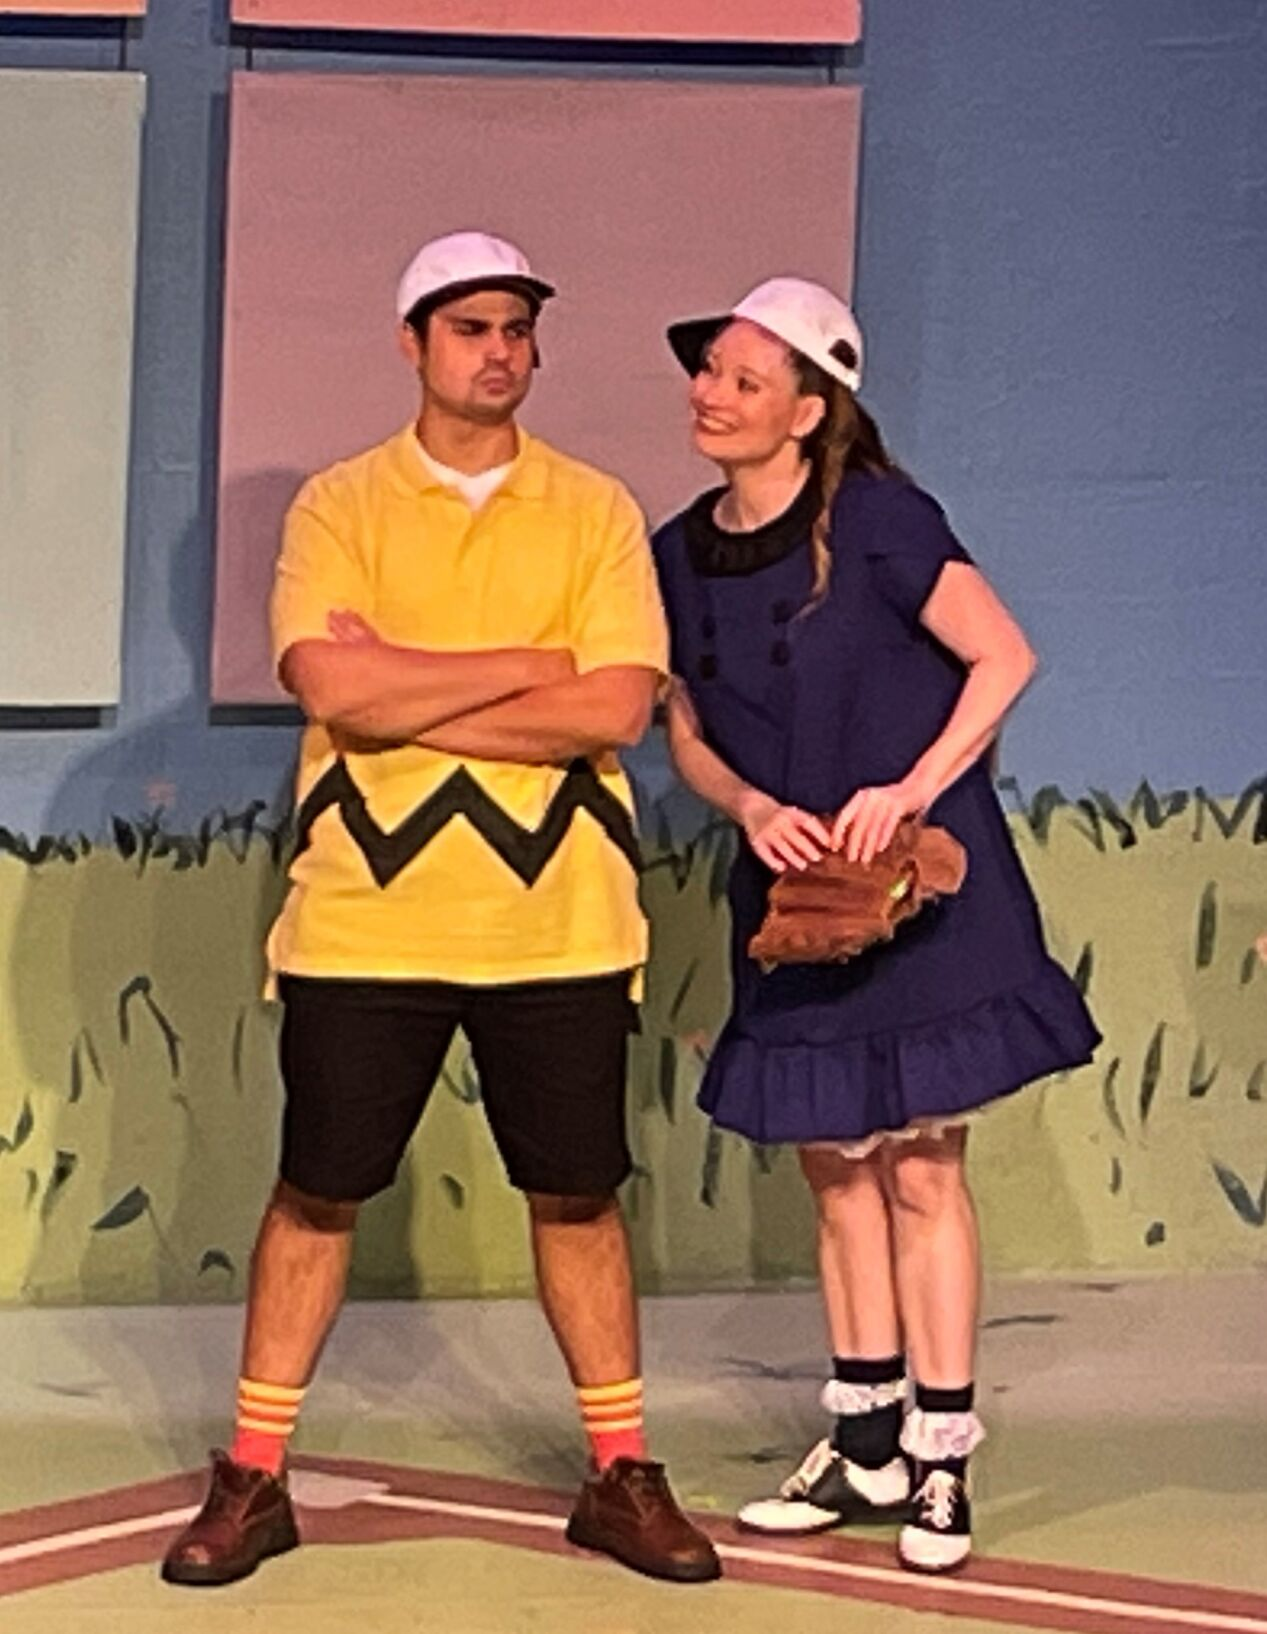 Charlie Brown and Lucy standing on stage